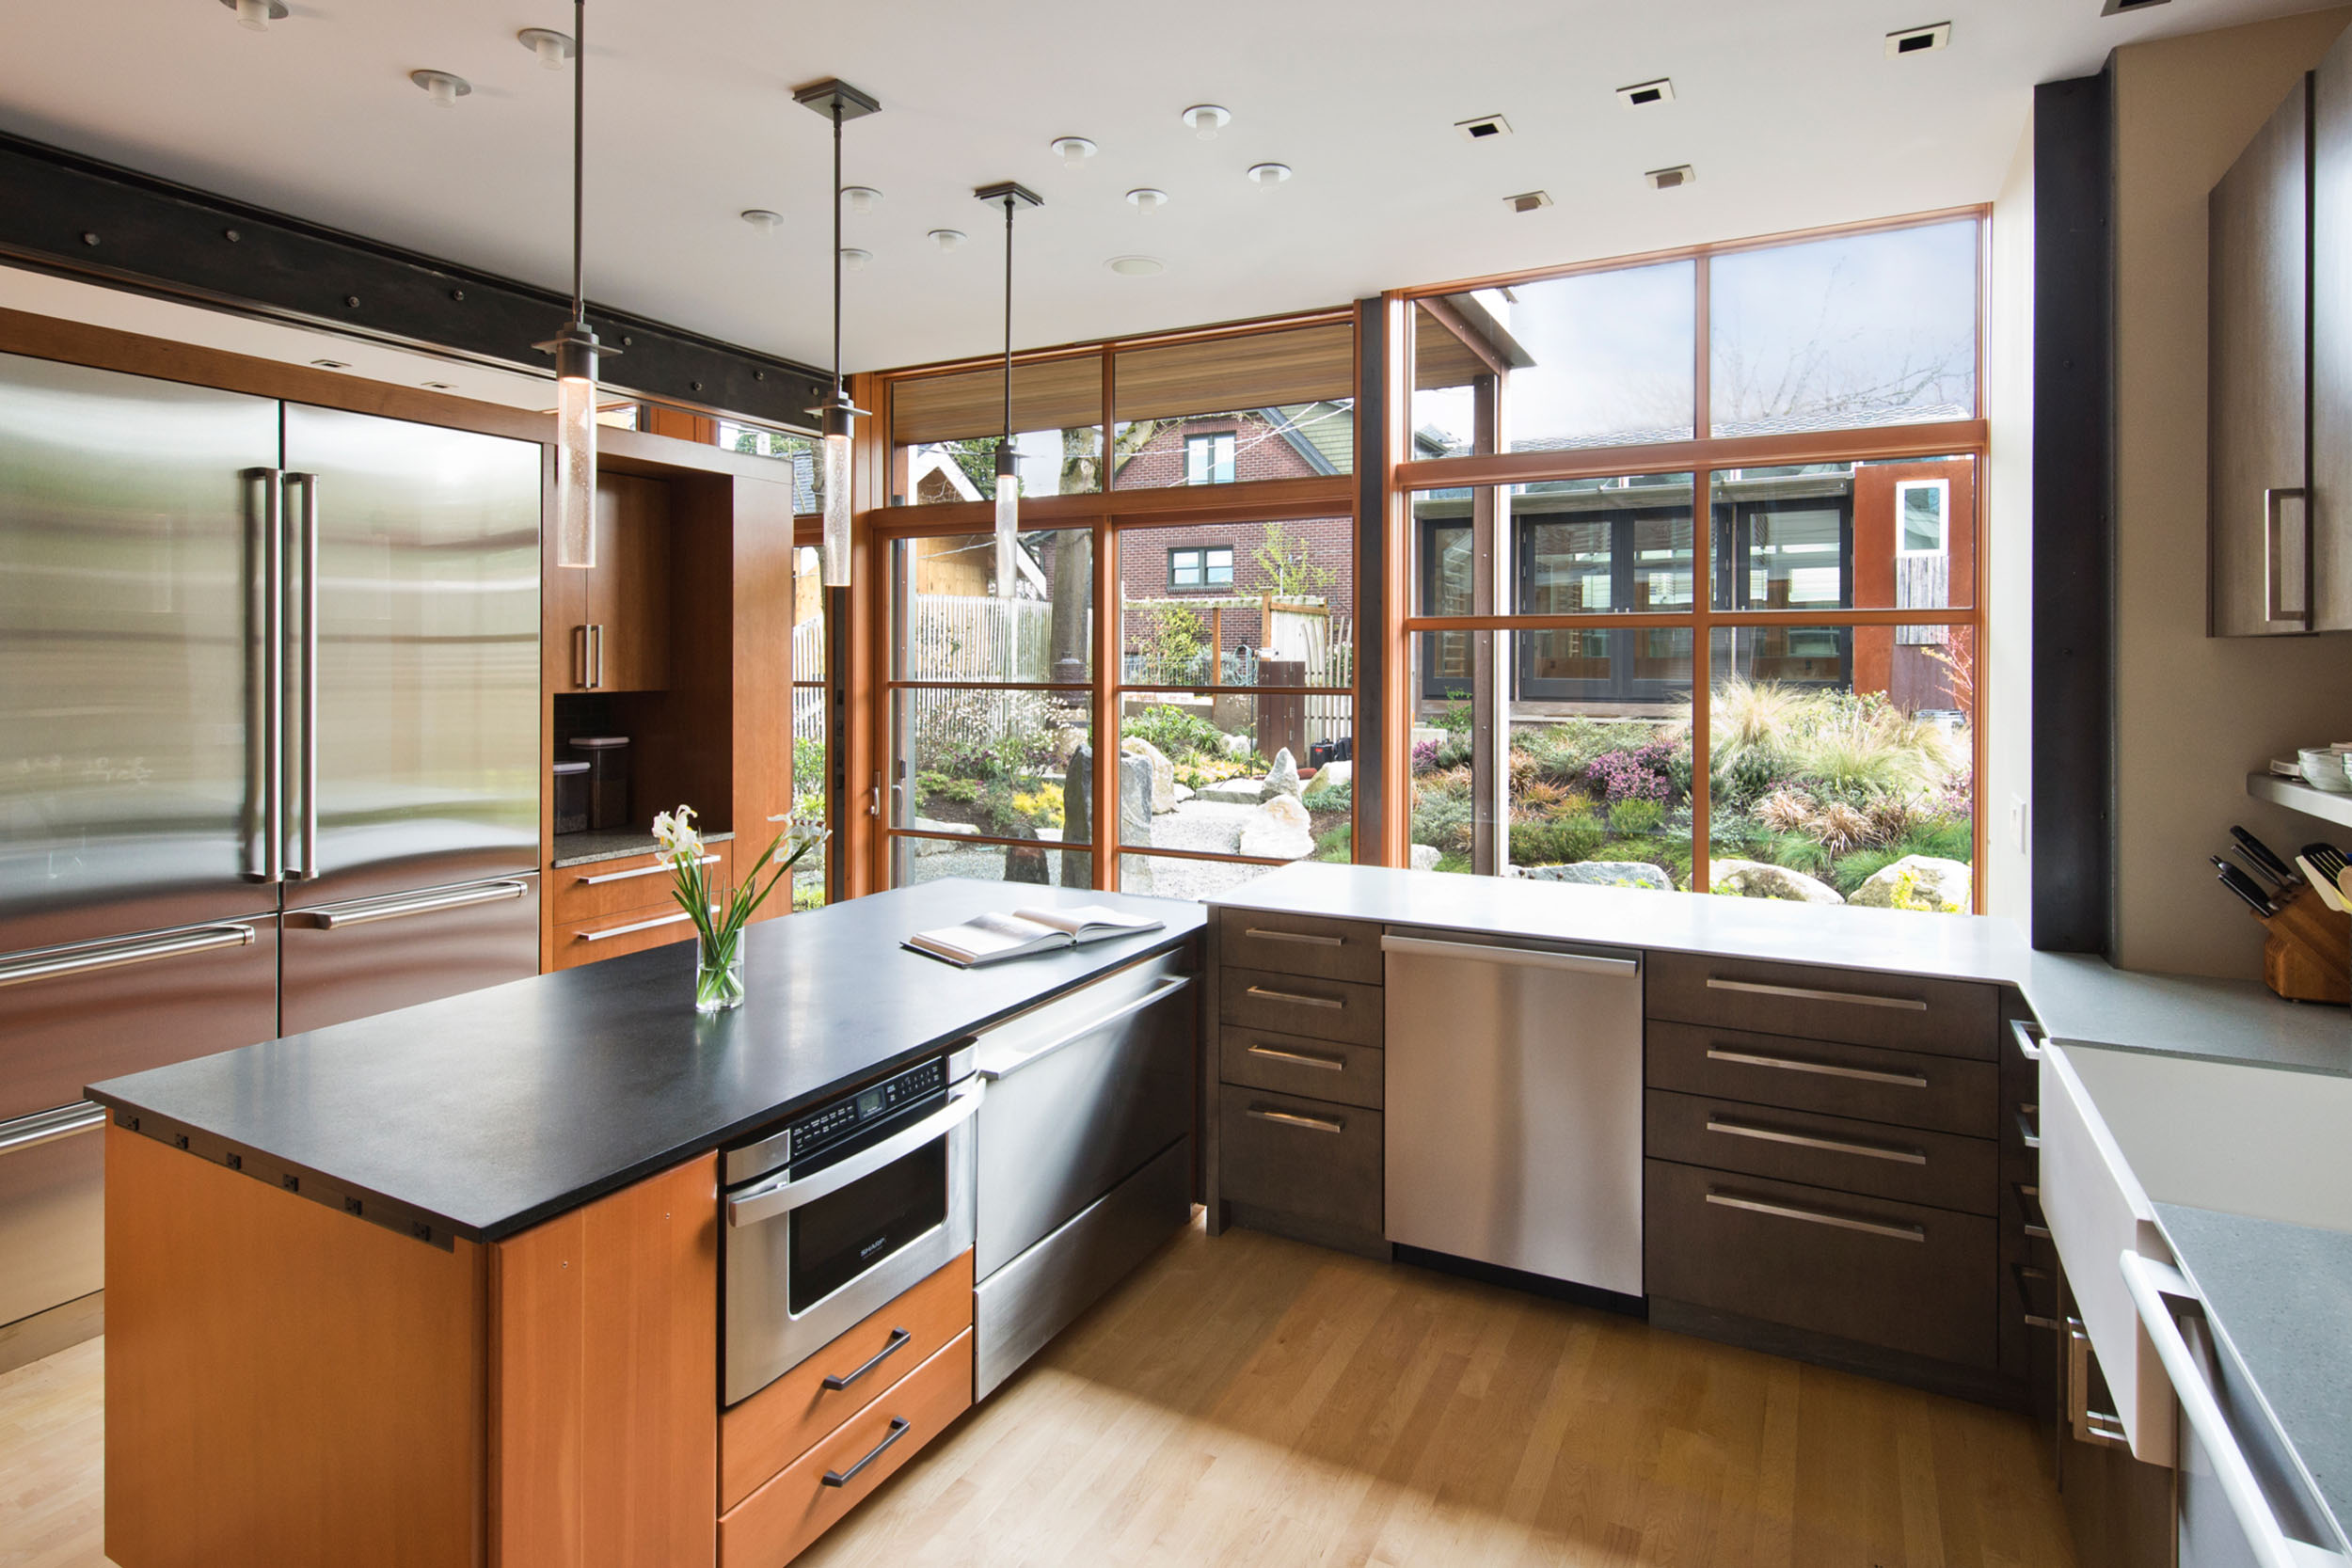 In the Baker's kitchen by Hoke Ley, the layout functions well for entertaining guests while actively cooking.